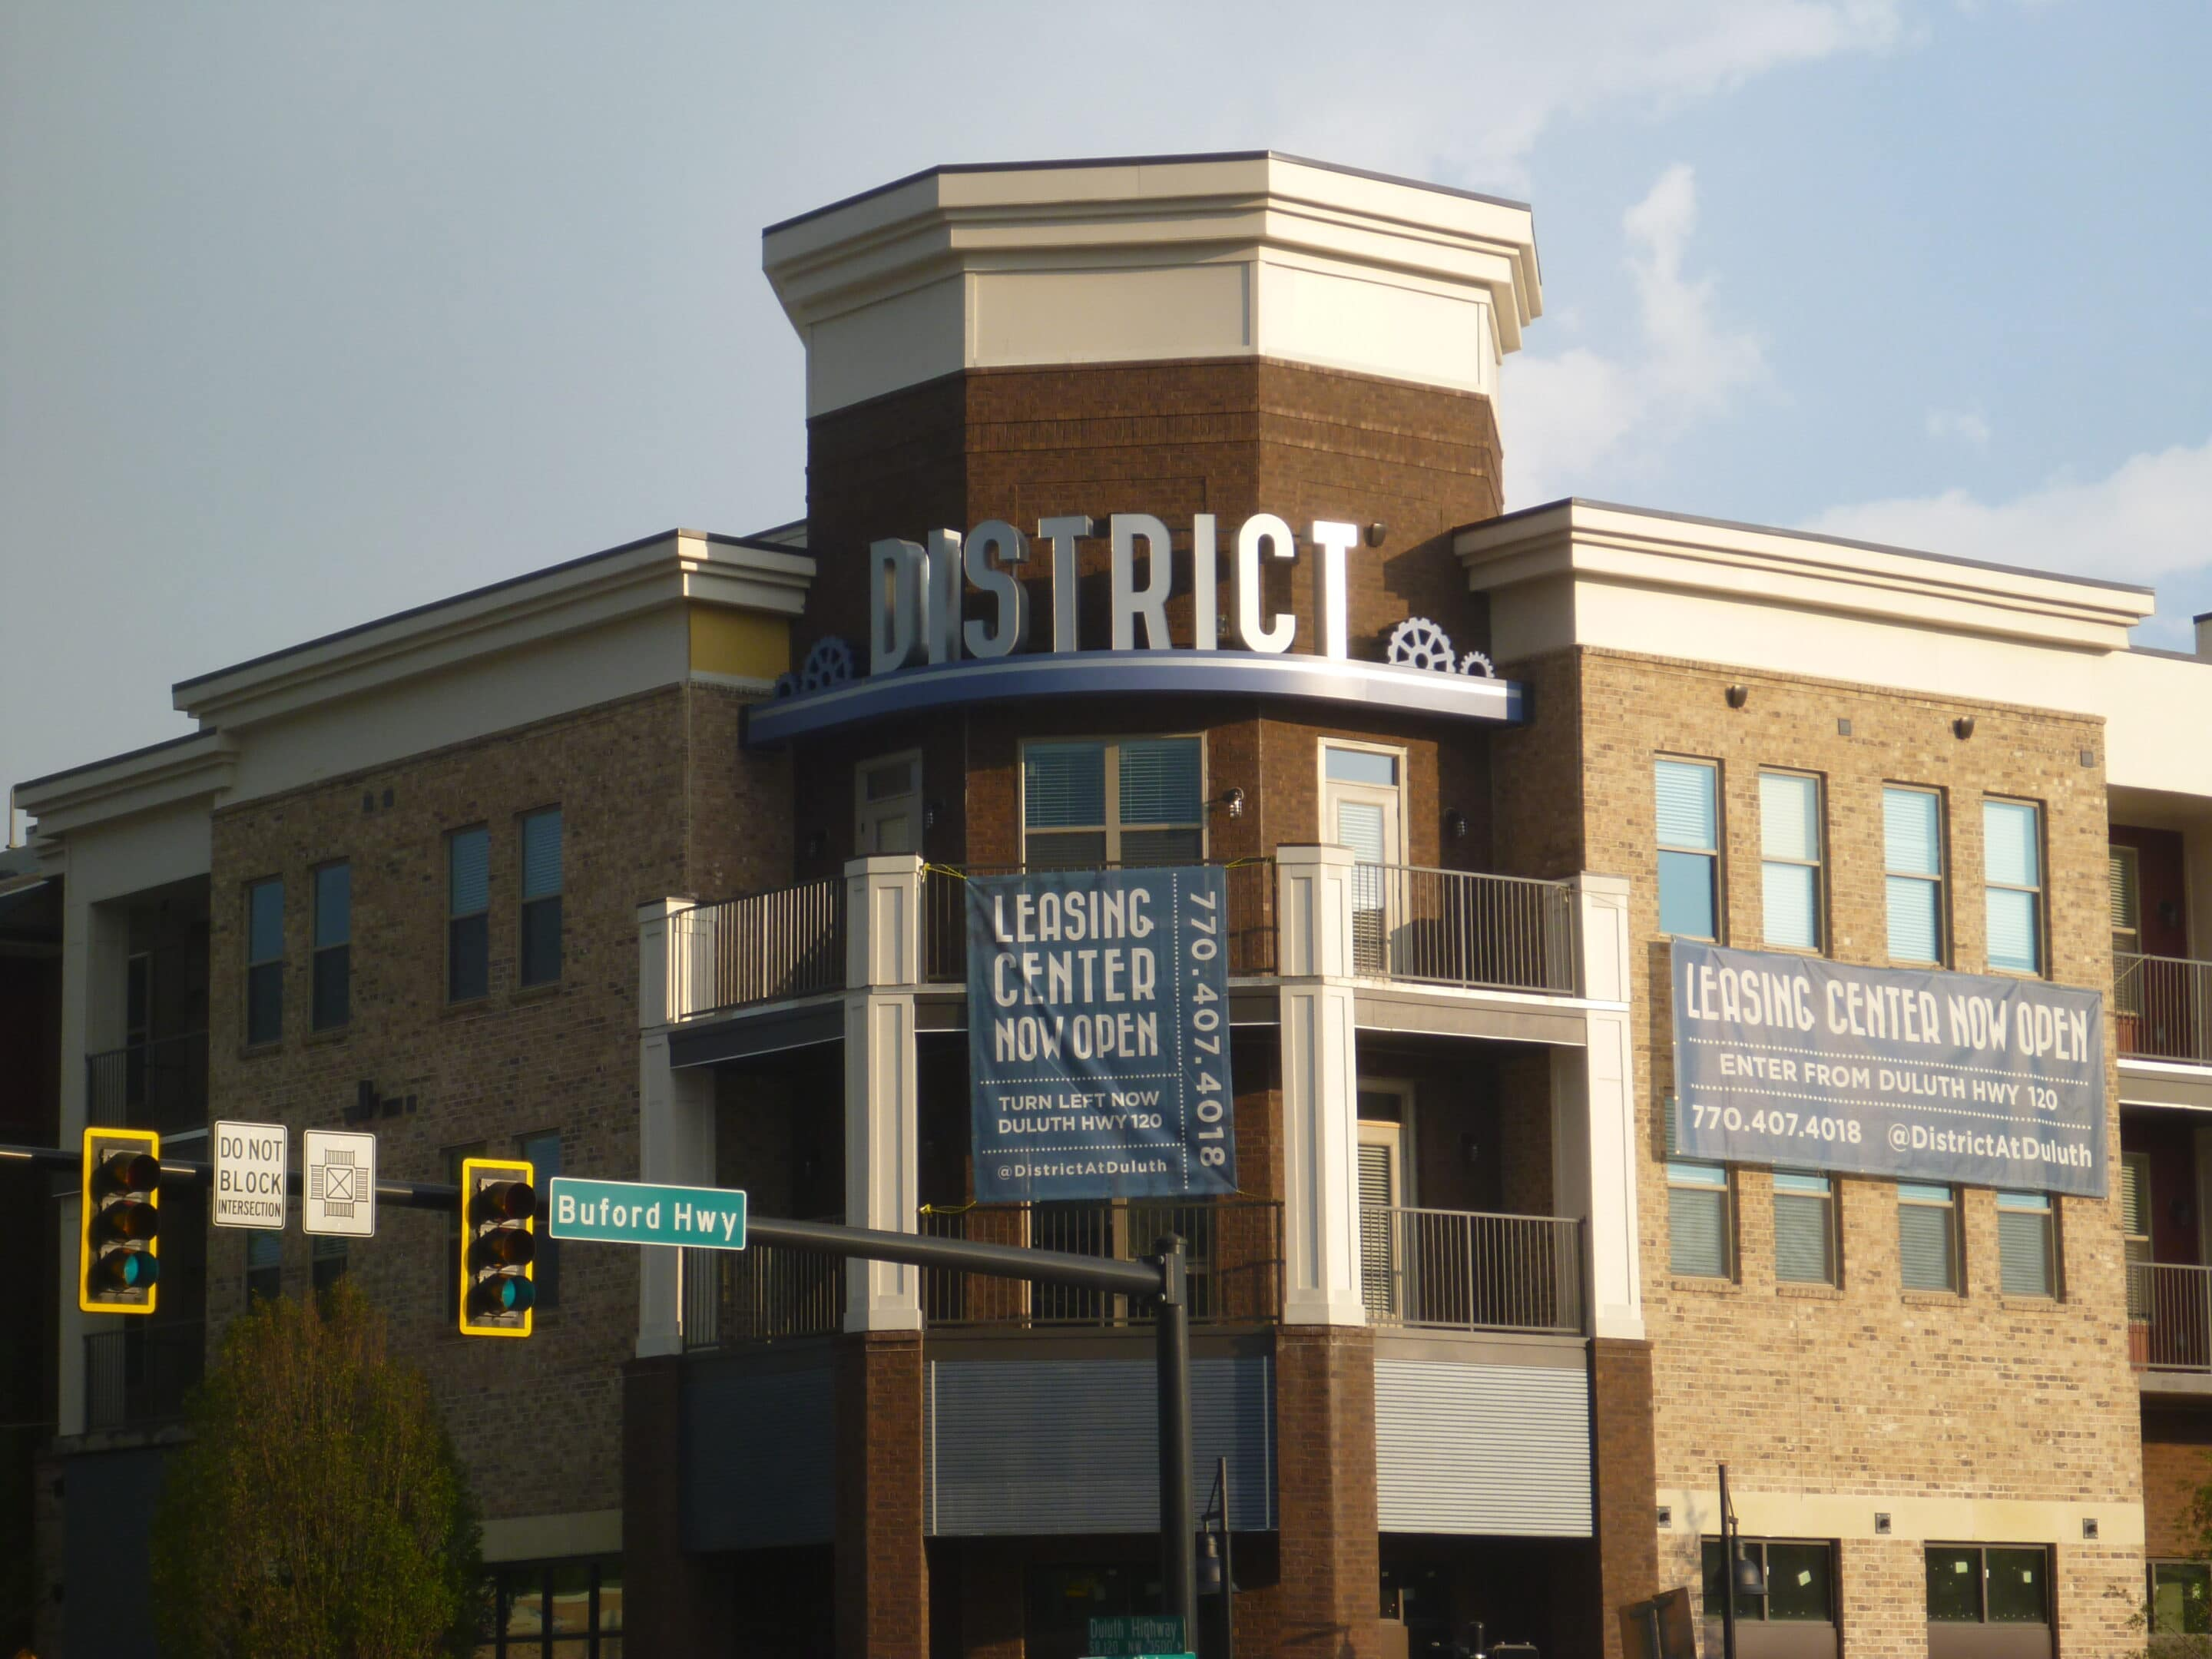 District at Duluth channel letters rounding corner of brick building